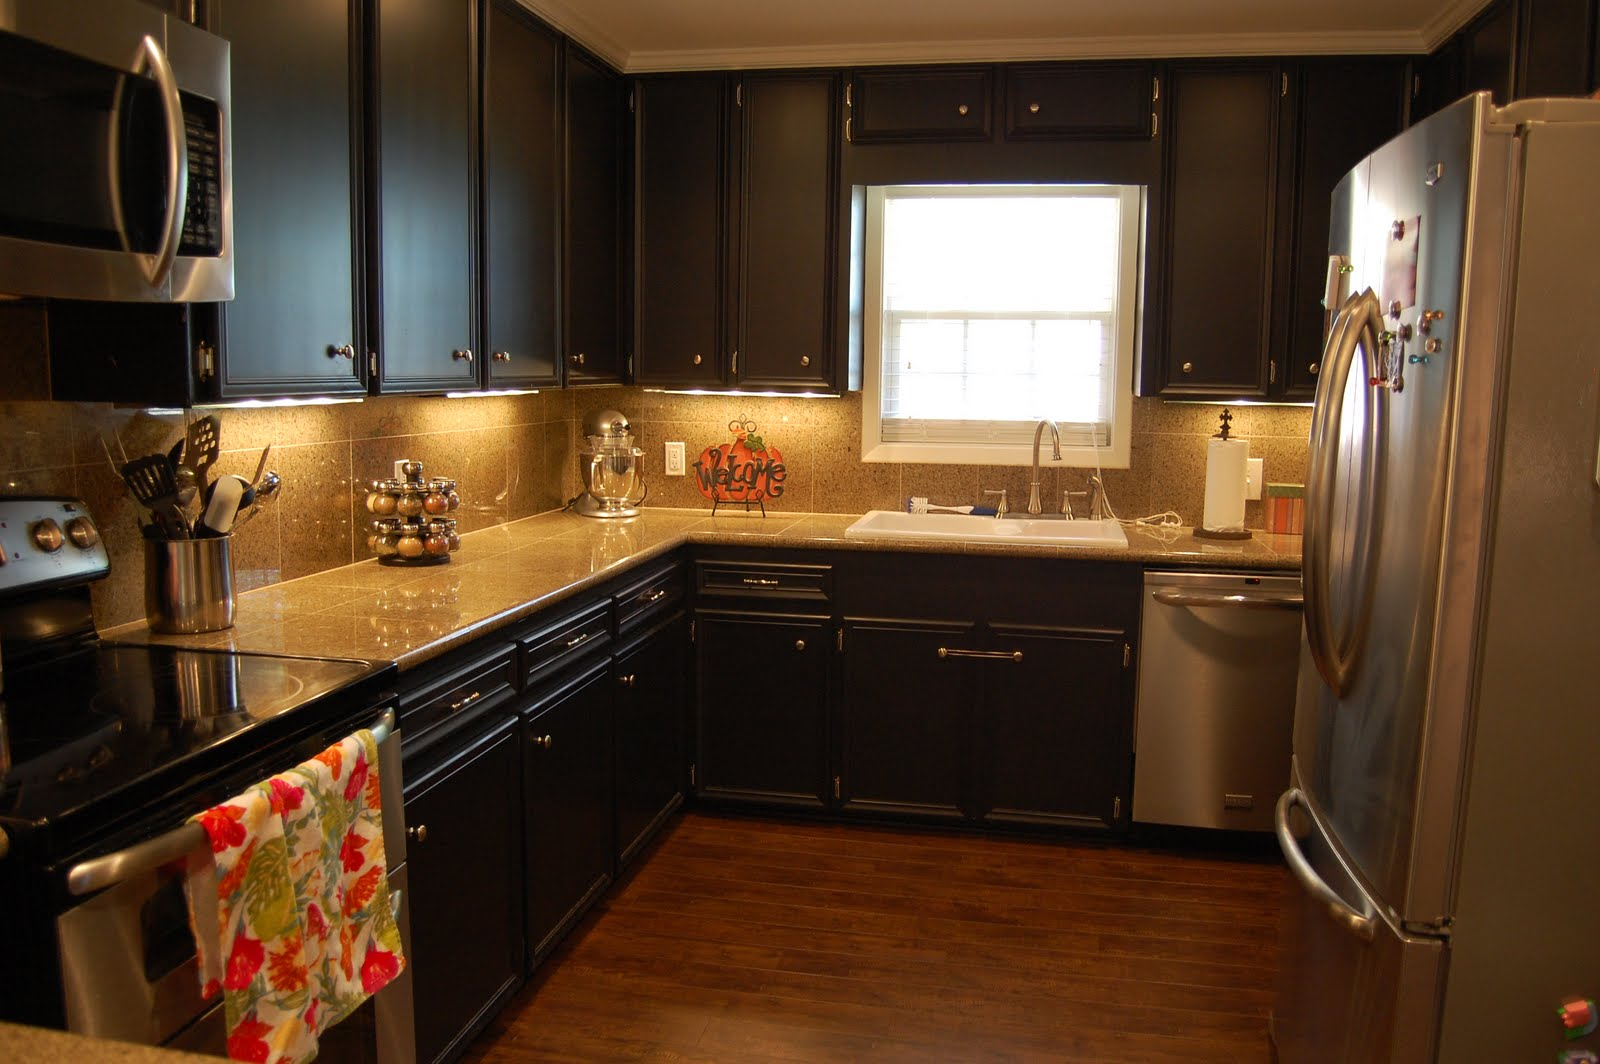 Musings of a farmer 39 s wife kitchen remodel pictures - Painted kitchen cabinets ideas ...